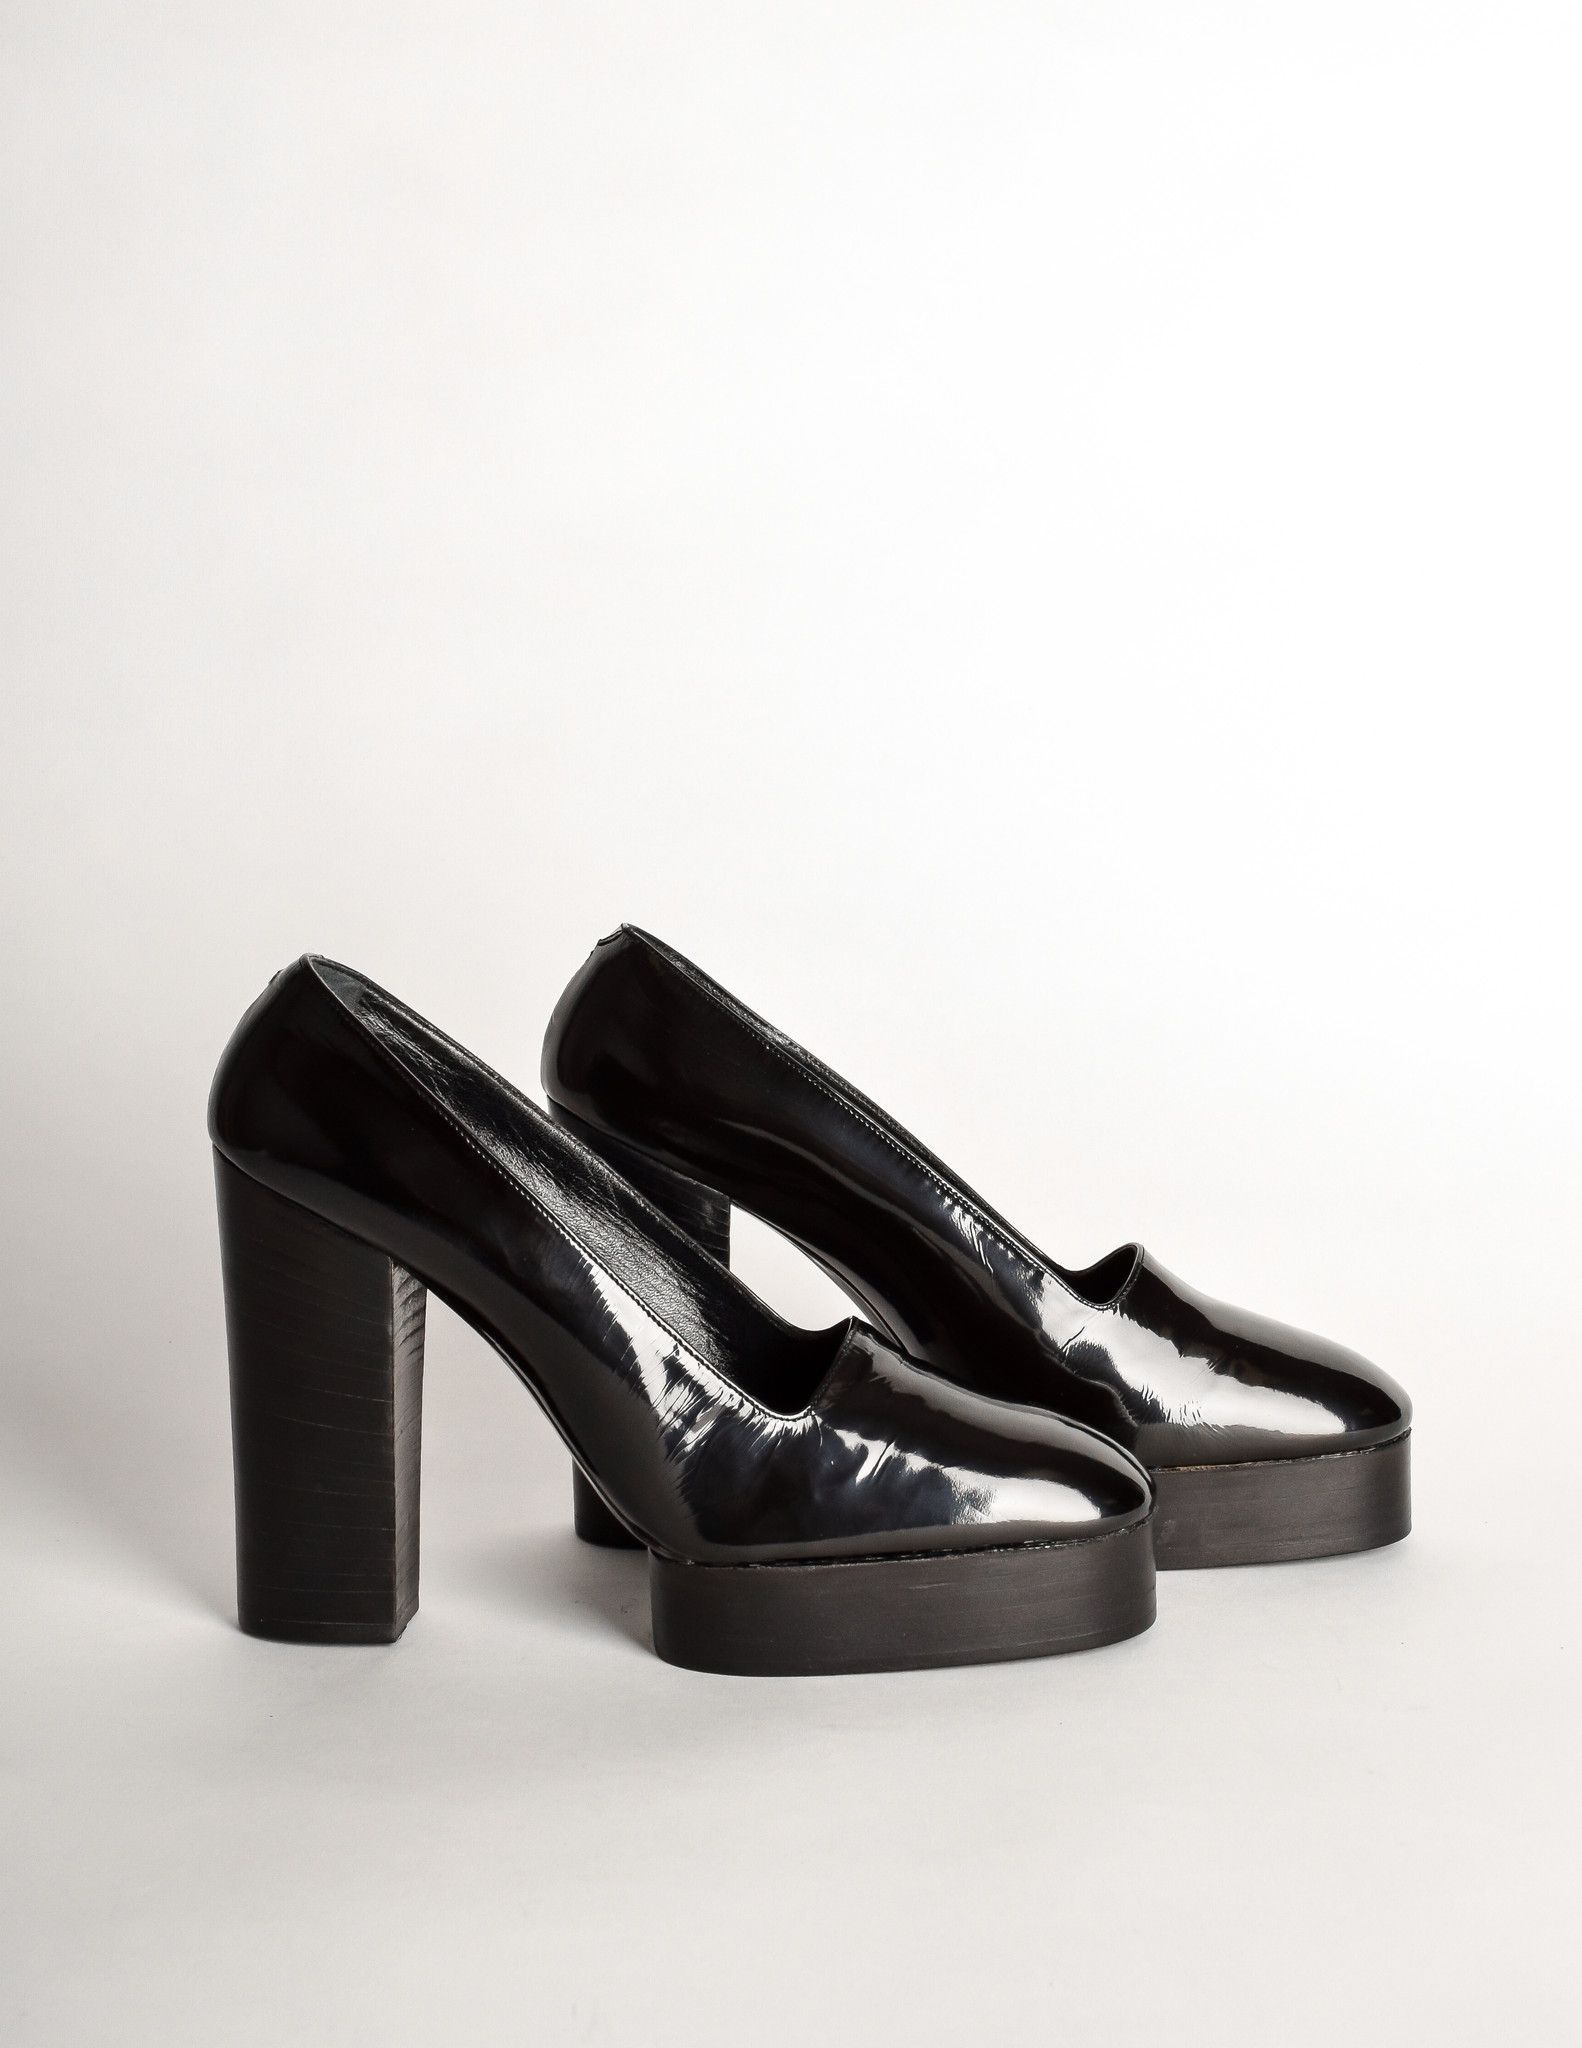 Walter Steiger Patent Leather Platform Pumps discount nicekicks xDBZjj